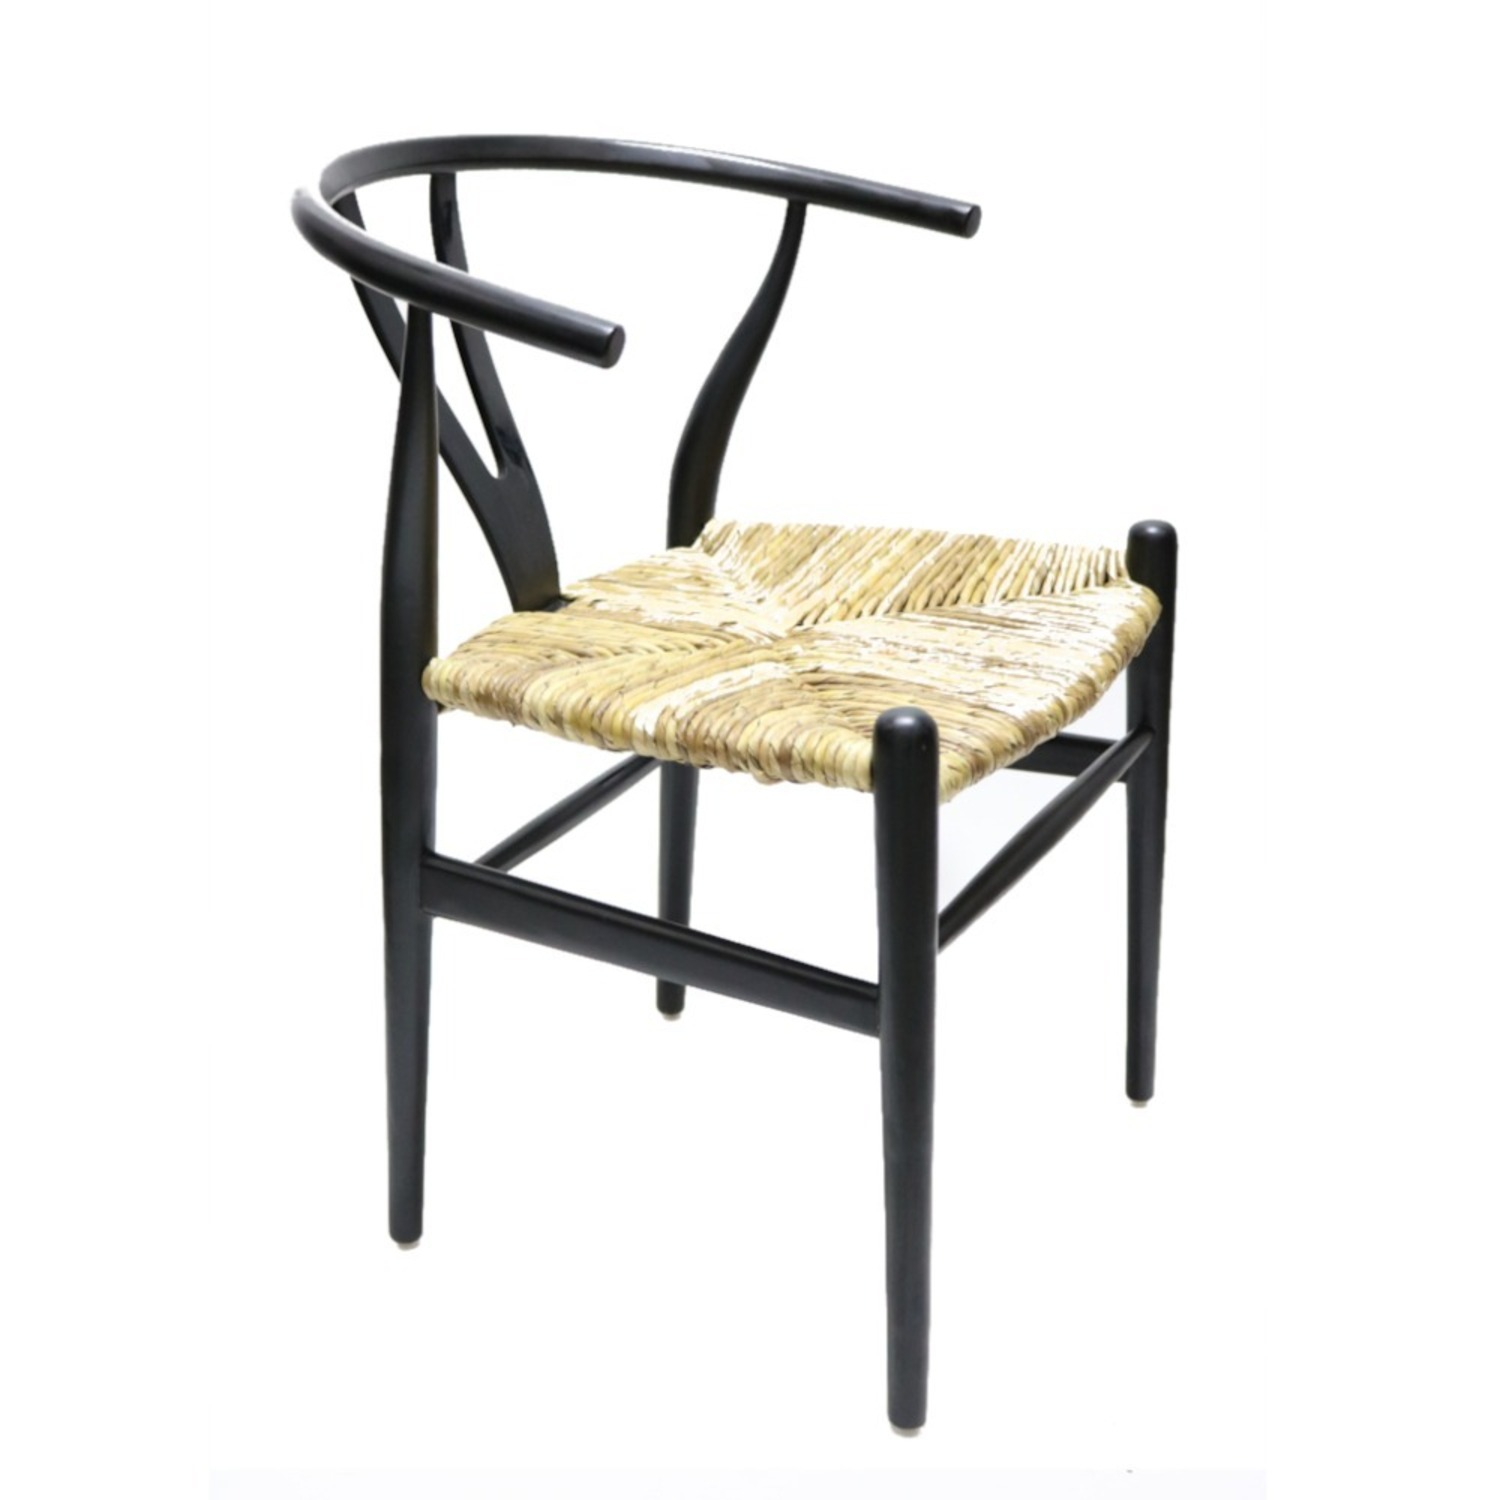 Dining Chair In Black Frame & Natural Hemp Seat - image-3